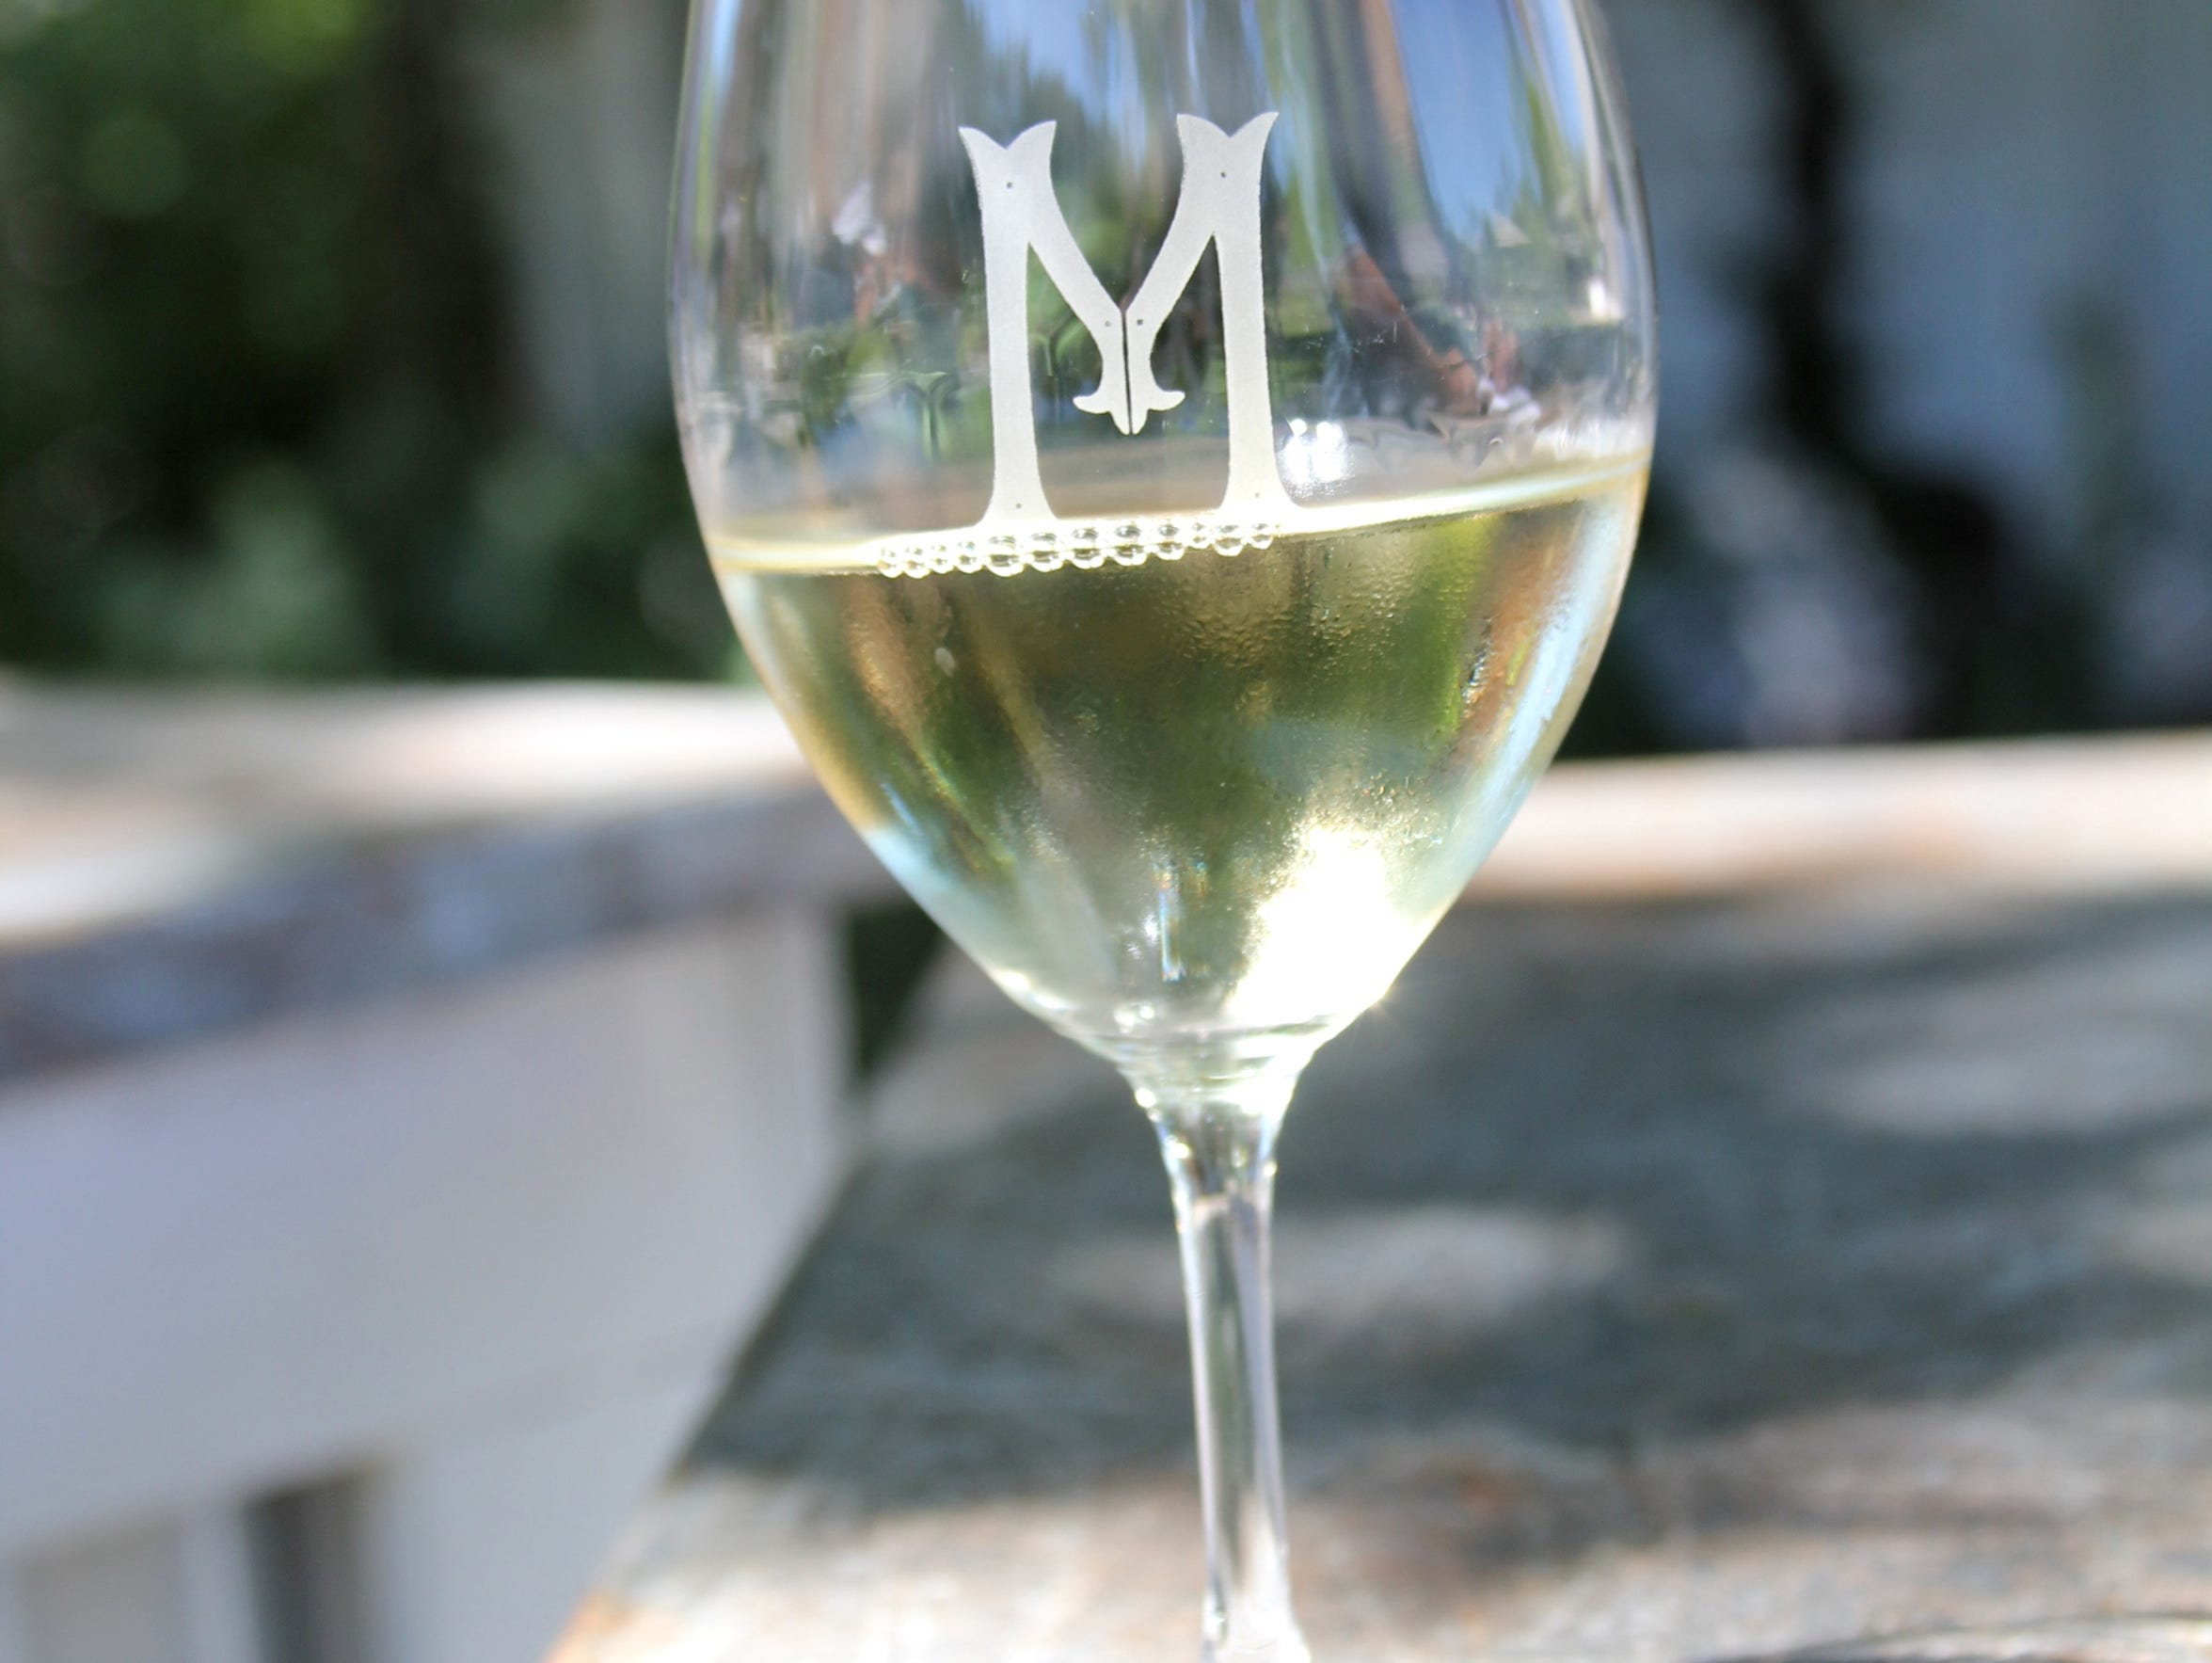 MacMurray Estate Vineyards specializes in pinot noir